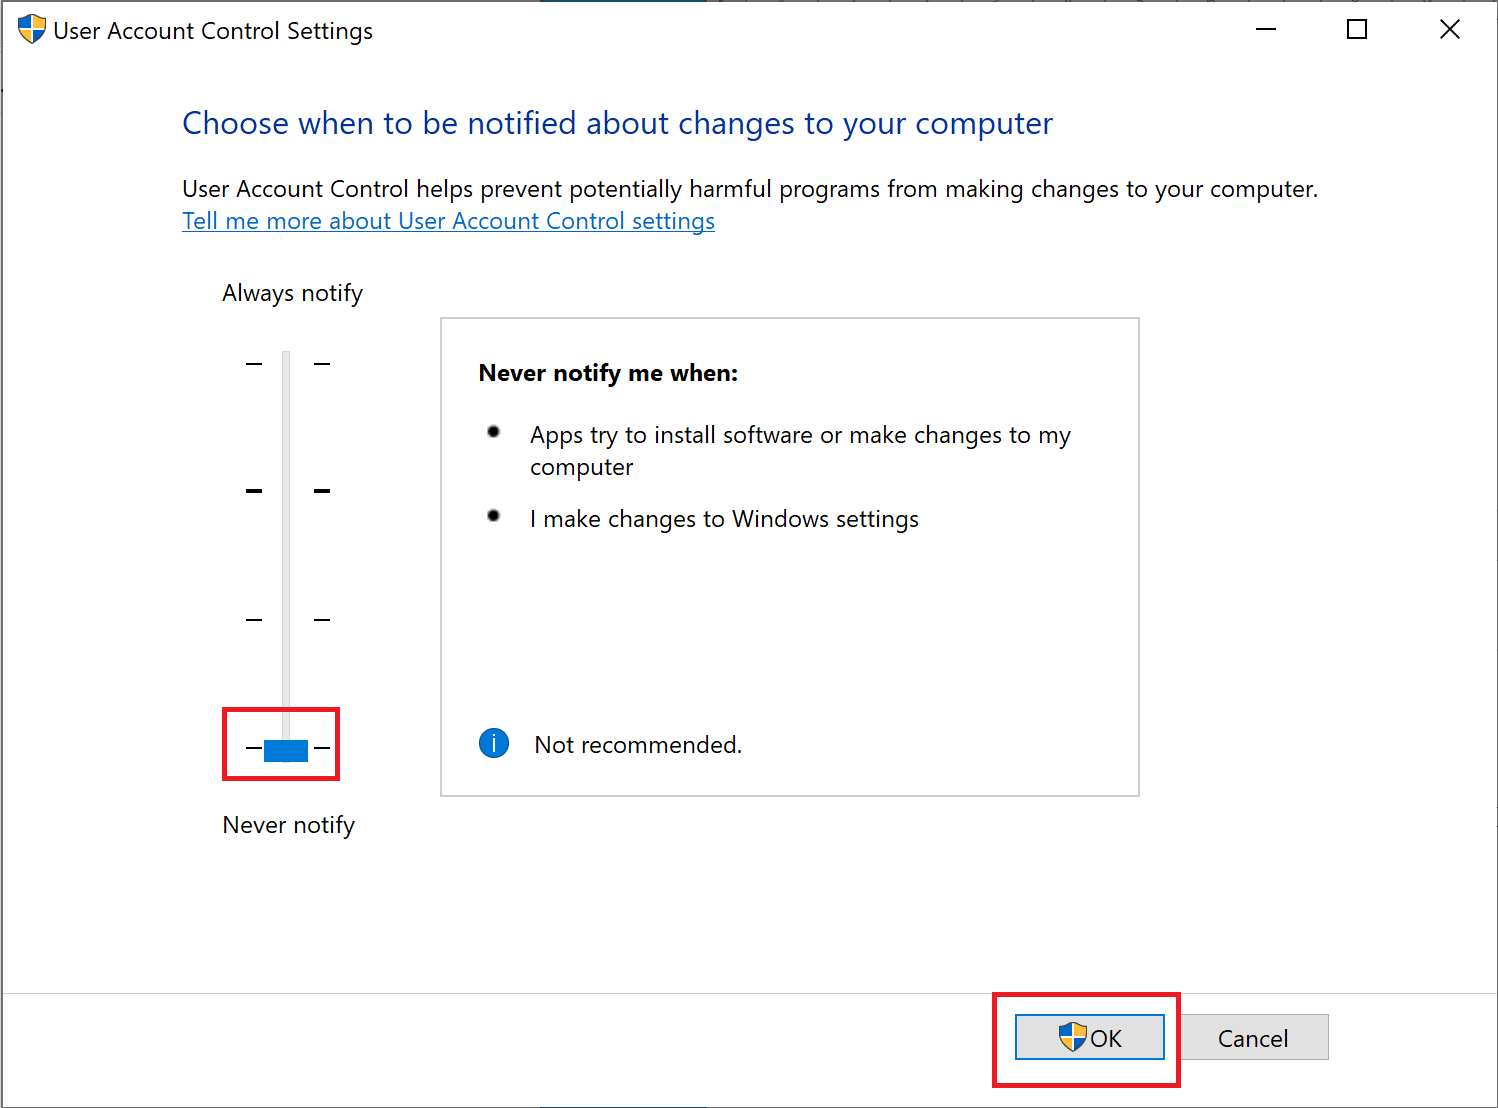 Drag the slider to Never notify displayed on the left-hand side of the new window and click on Ok